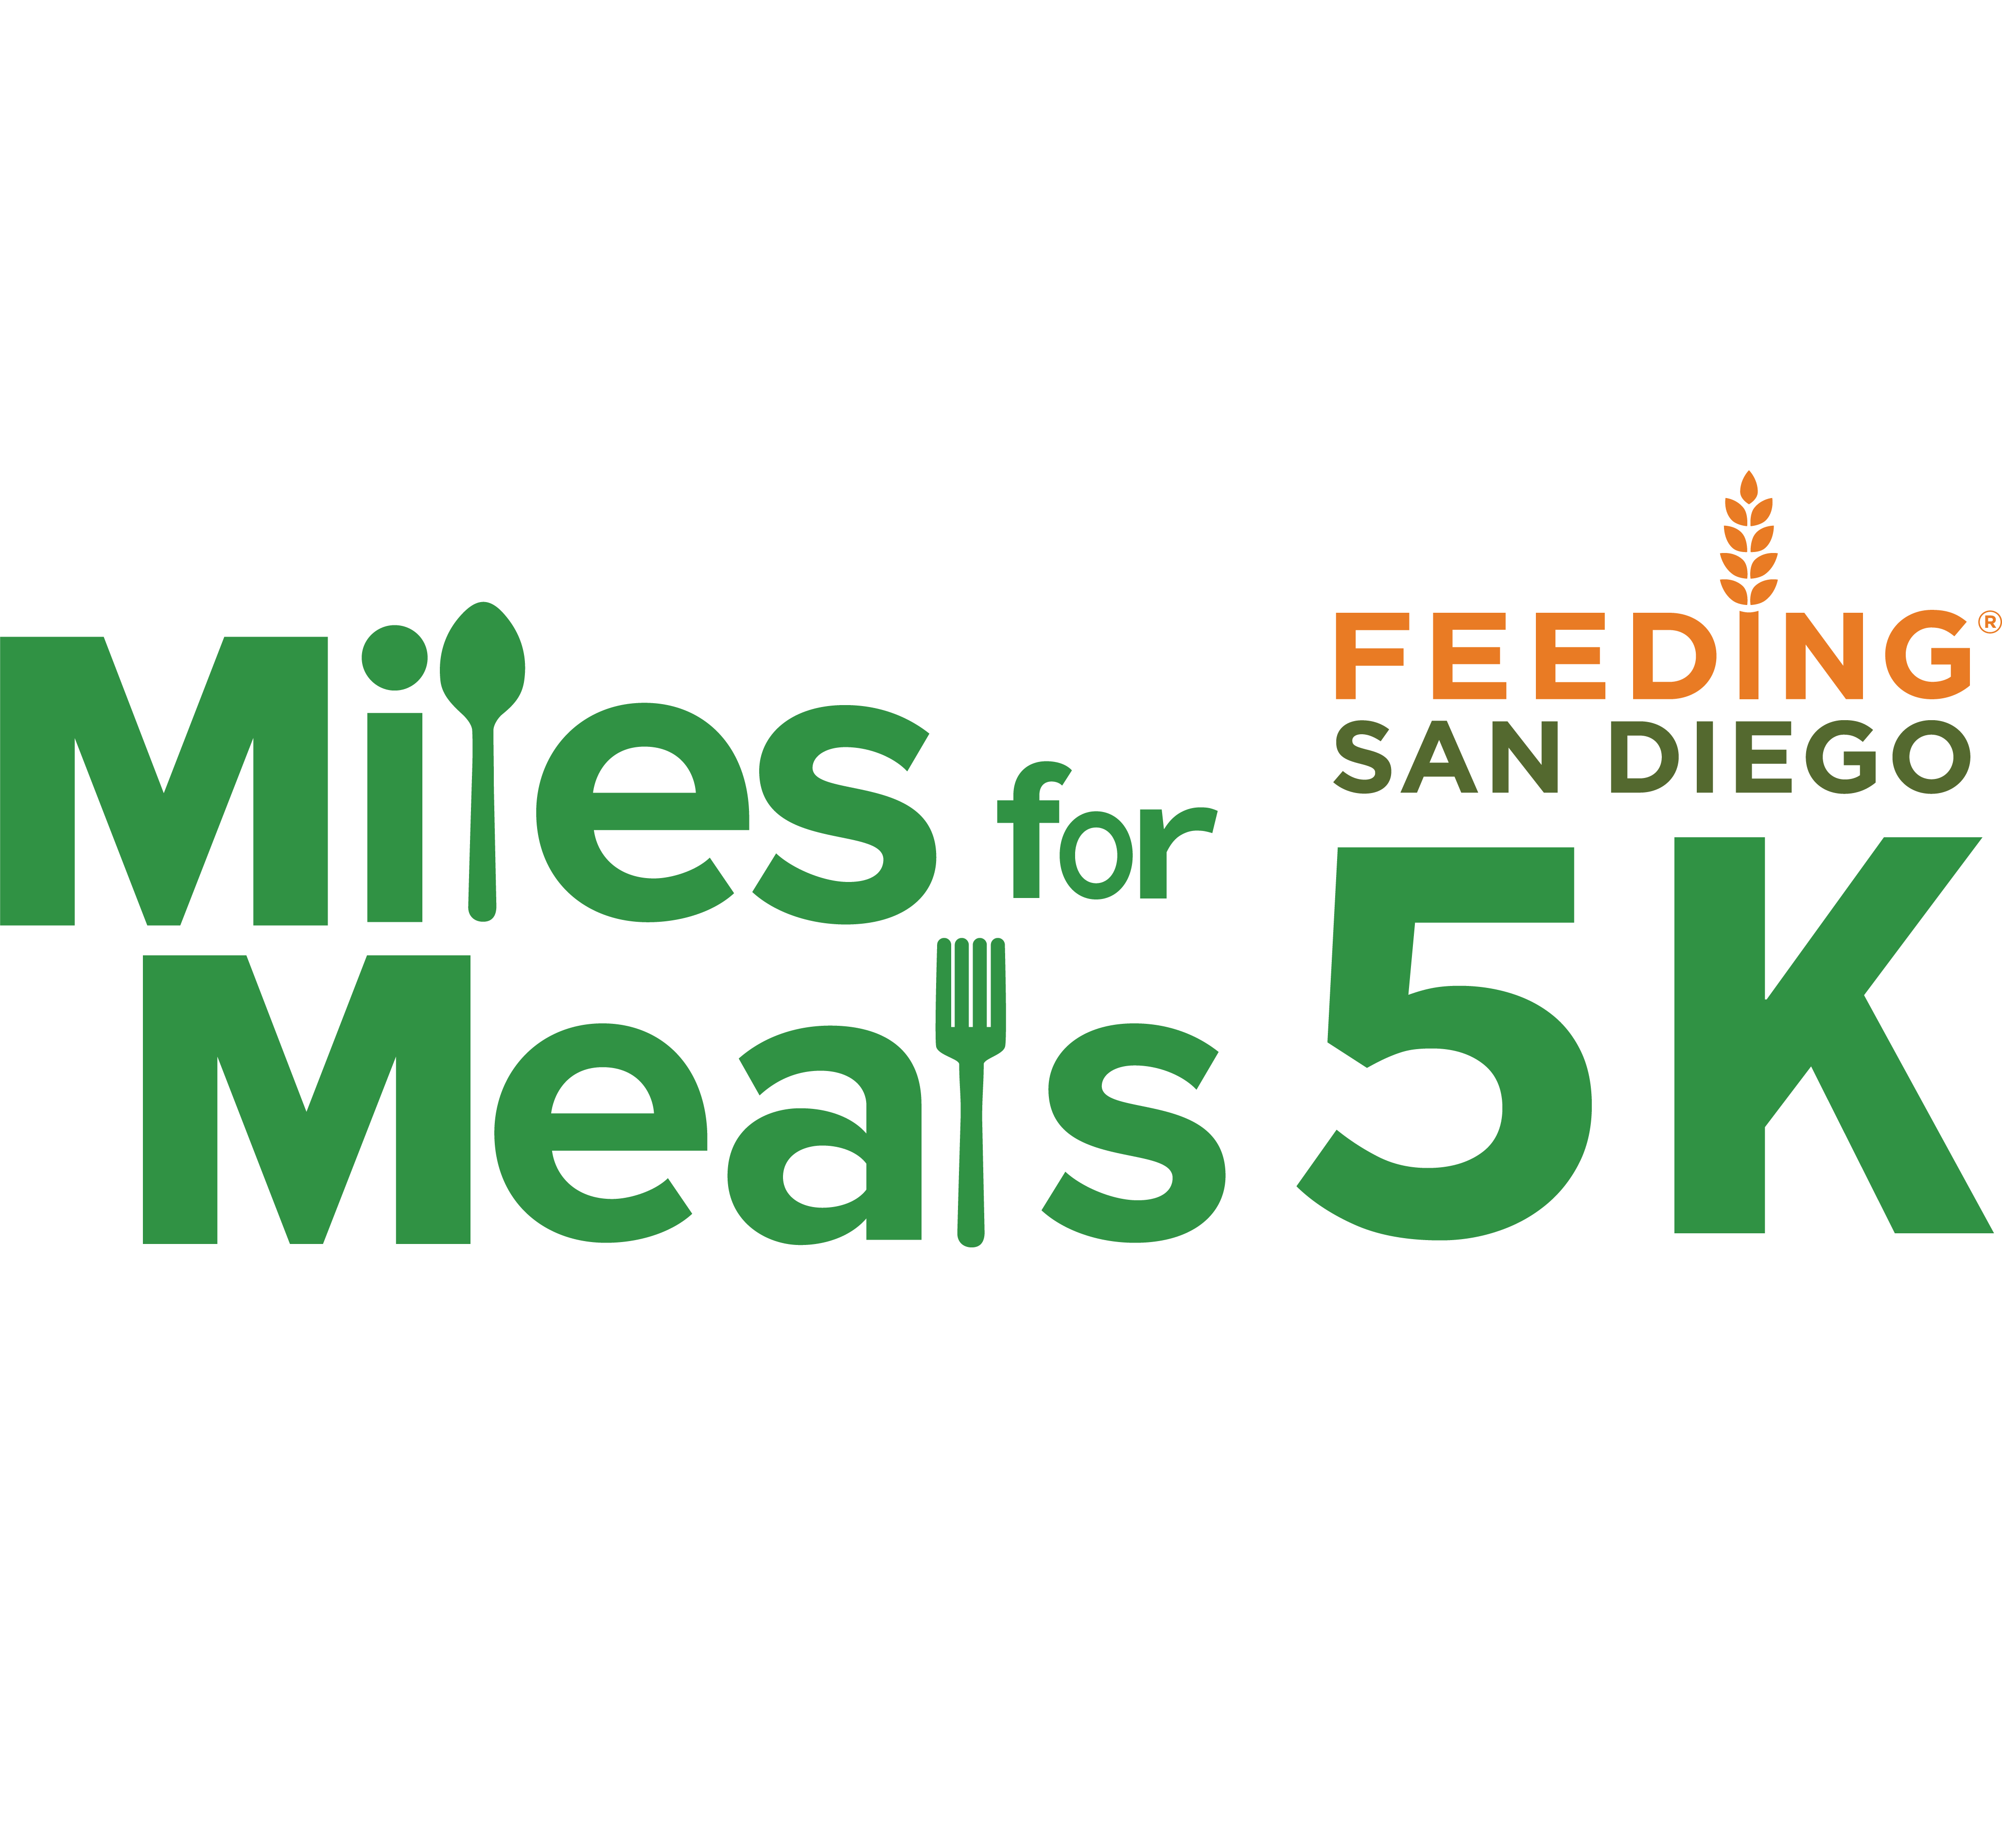 Donate to Miles for Meals 5K